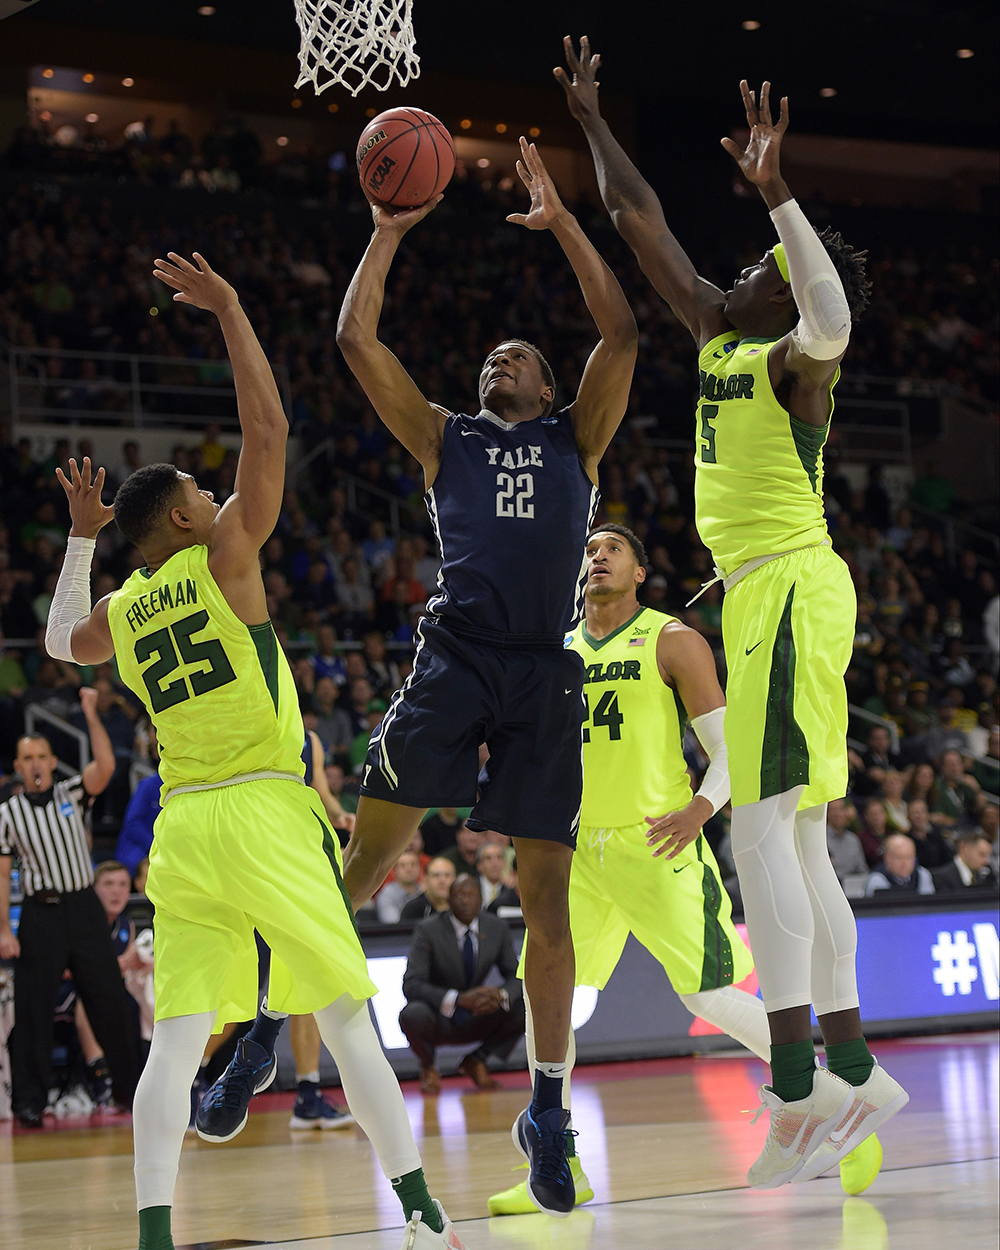 This year, both the 13th-seeded Rainbow Warriors and the 12th-seeded Bulldogs won their first ever tournament games. Yale defeated the fifth-seeded Baylor Bears 79–75, and Hawaii upset the fourth-seeded California Golden Bears 77–66. These were just two of the 10 double-digit seeds to win their first-round games. While Hawaii's Quincy Smith said he had the Warriors winning in his bracket, these teams broke brackets and barriers with their victories.